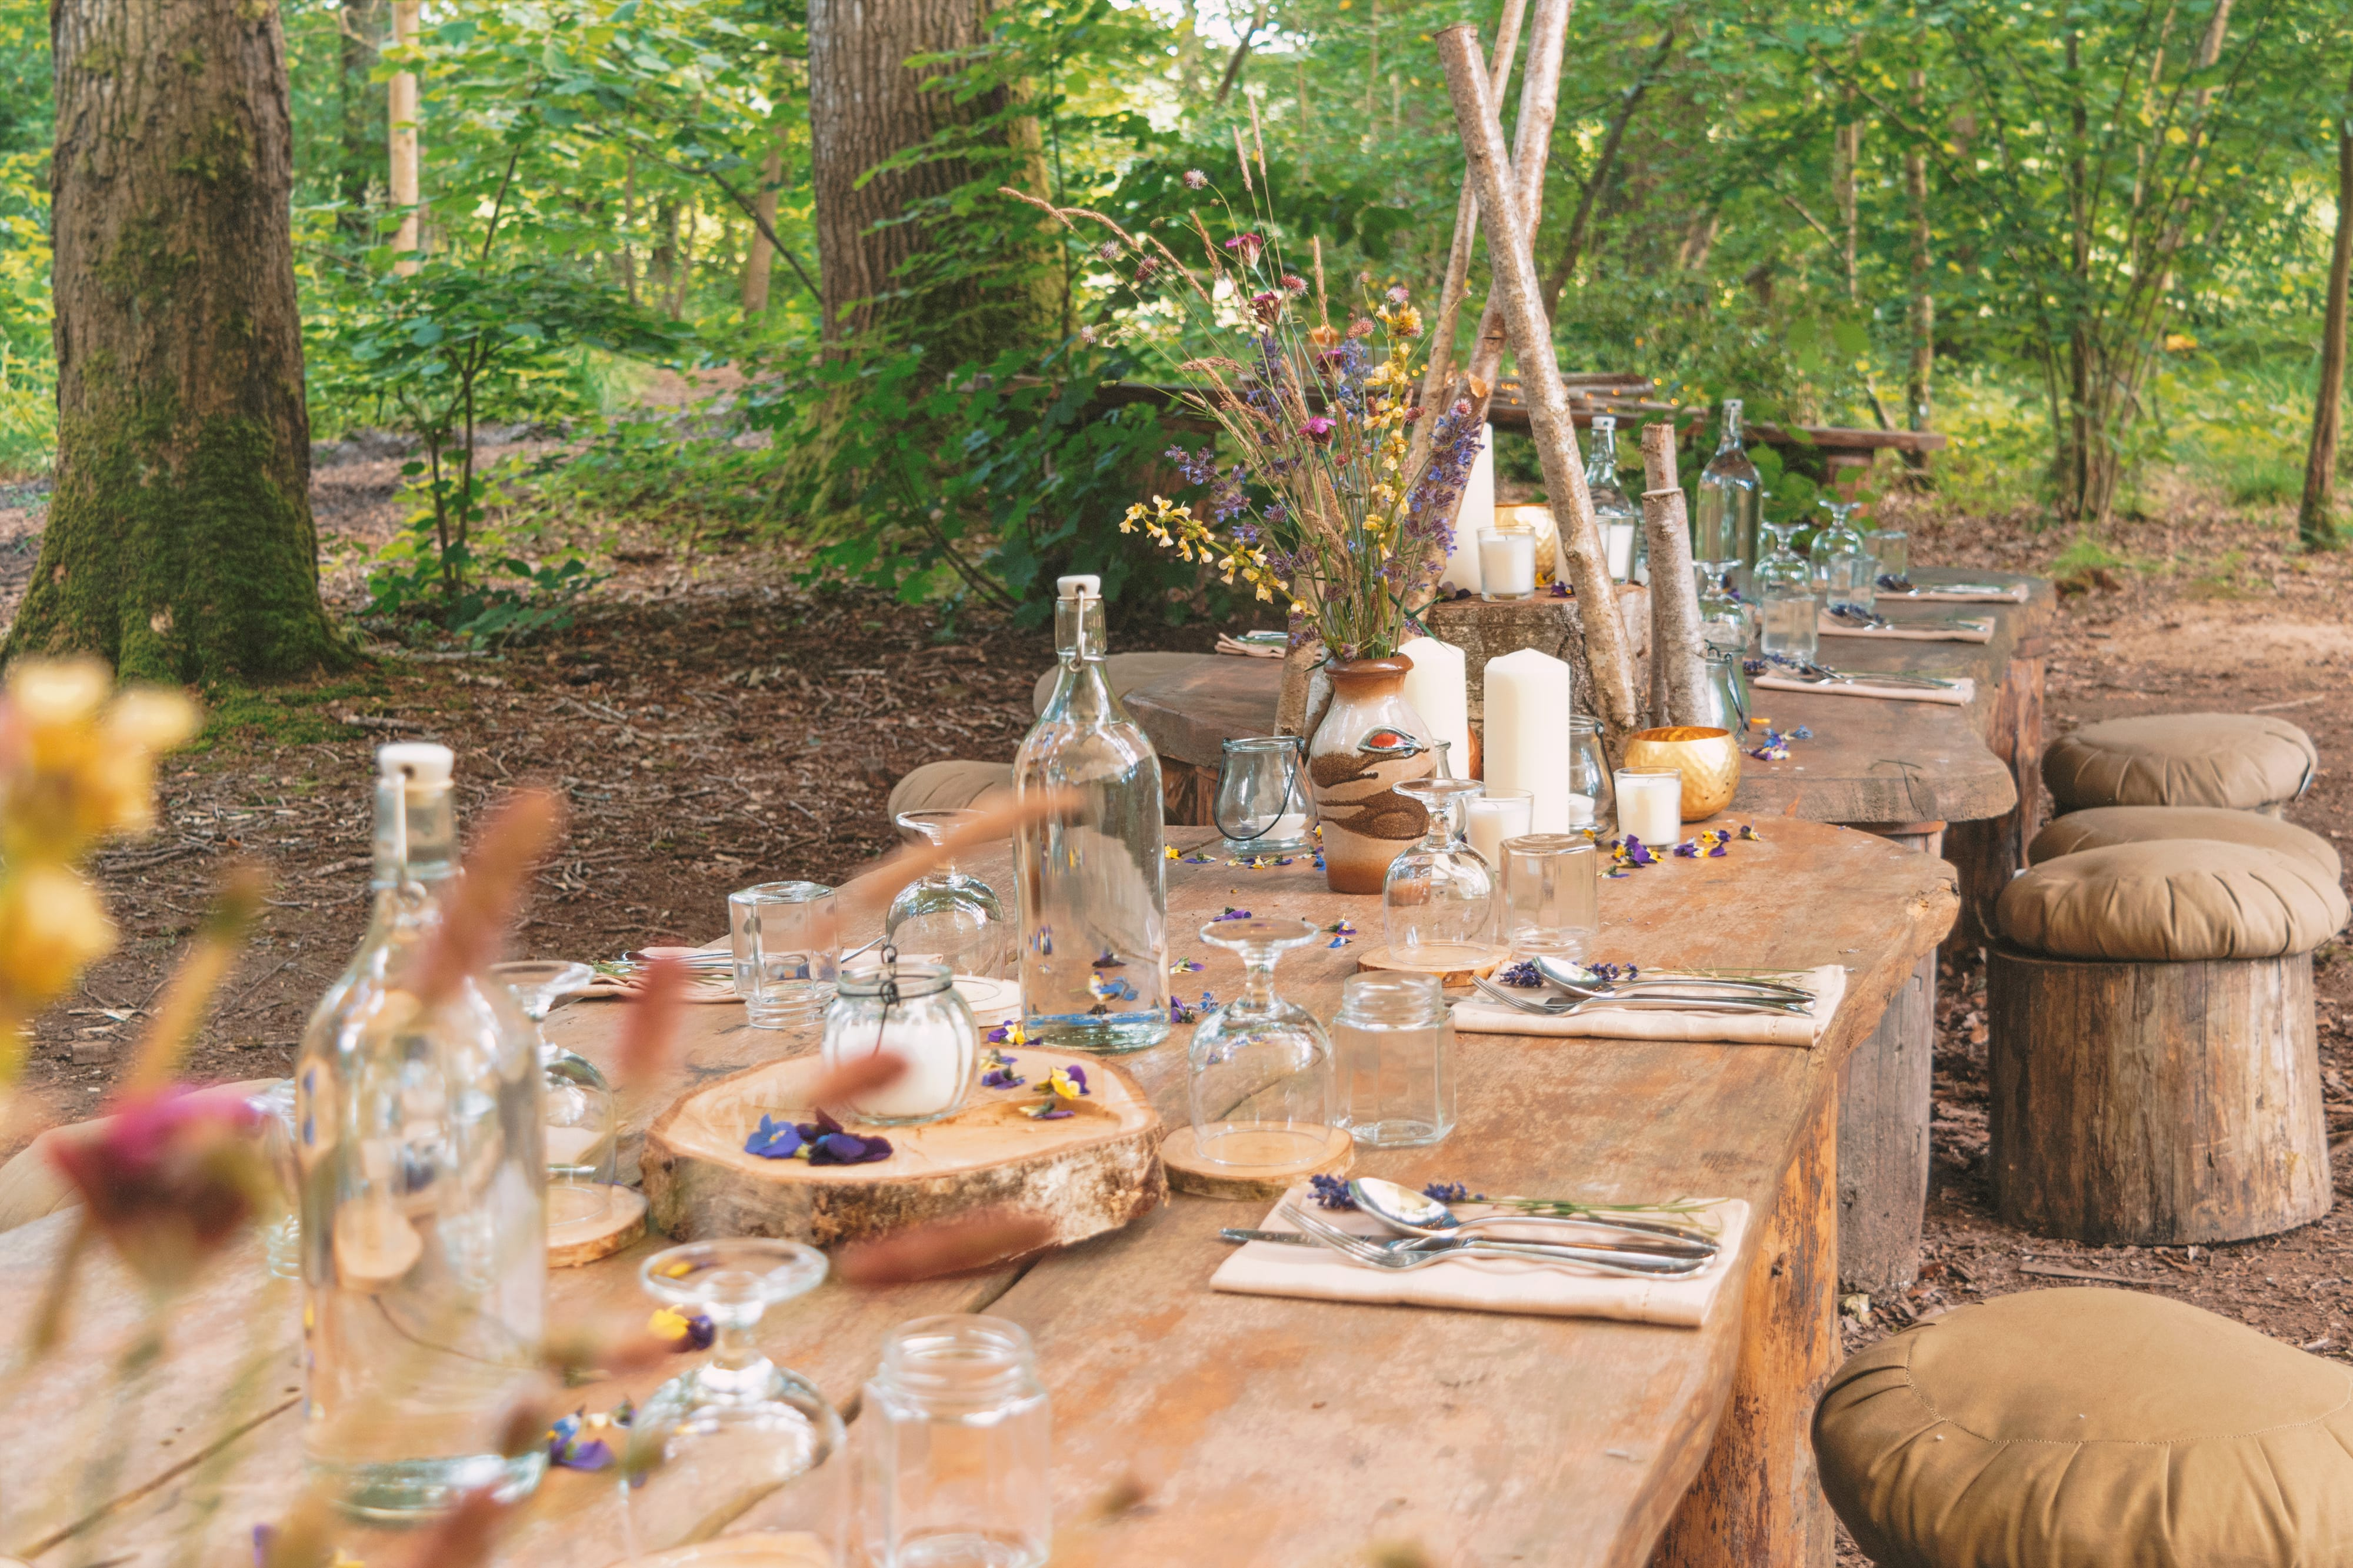 Outdoor forest dining area table